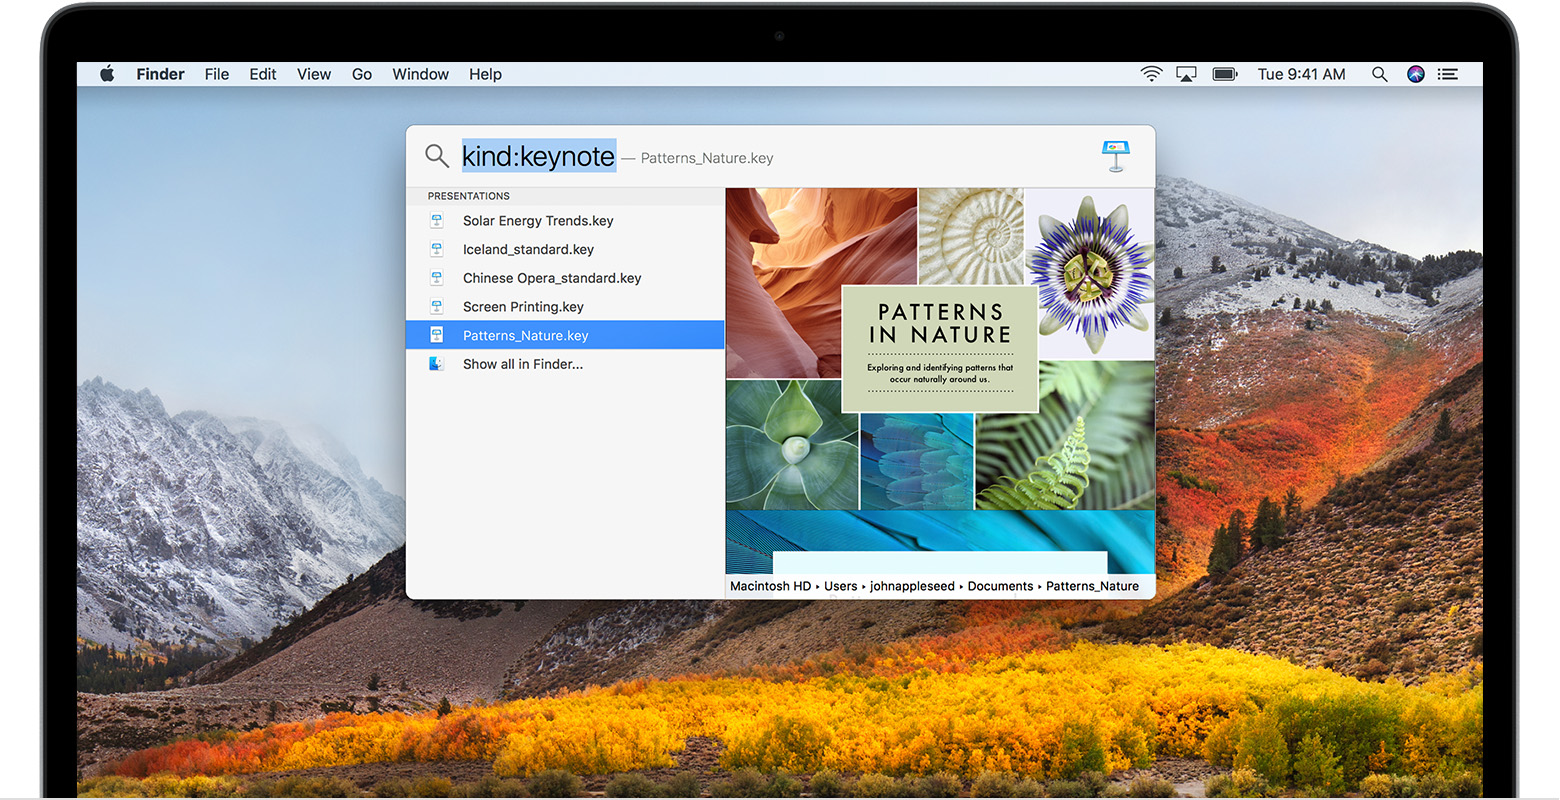 Use Spotlight on your Mac - Apple Support